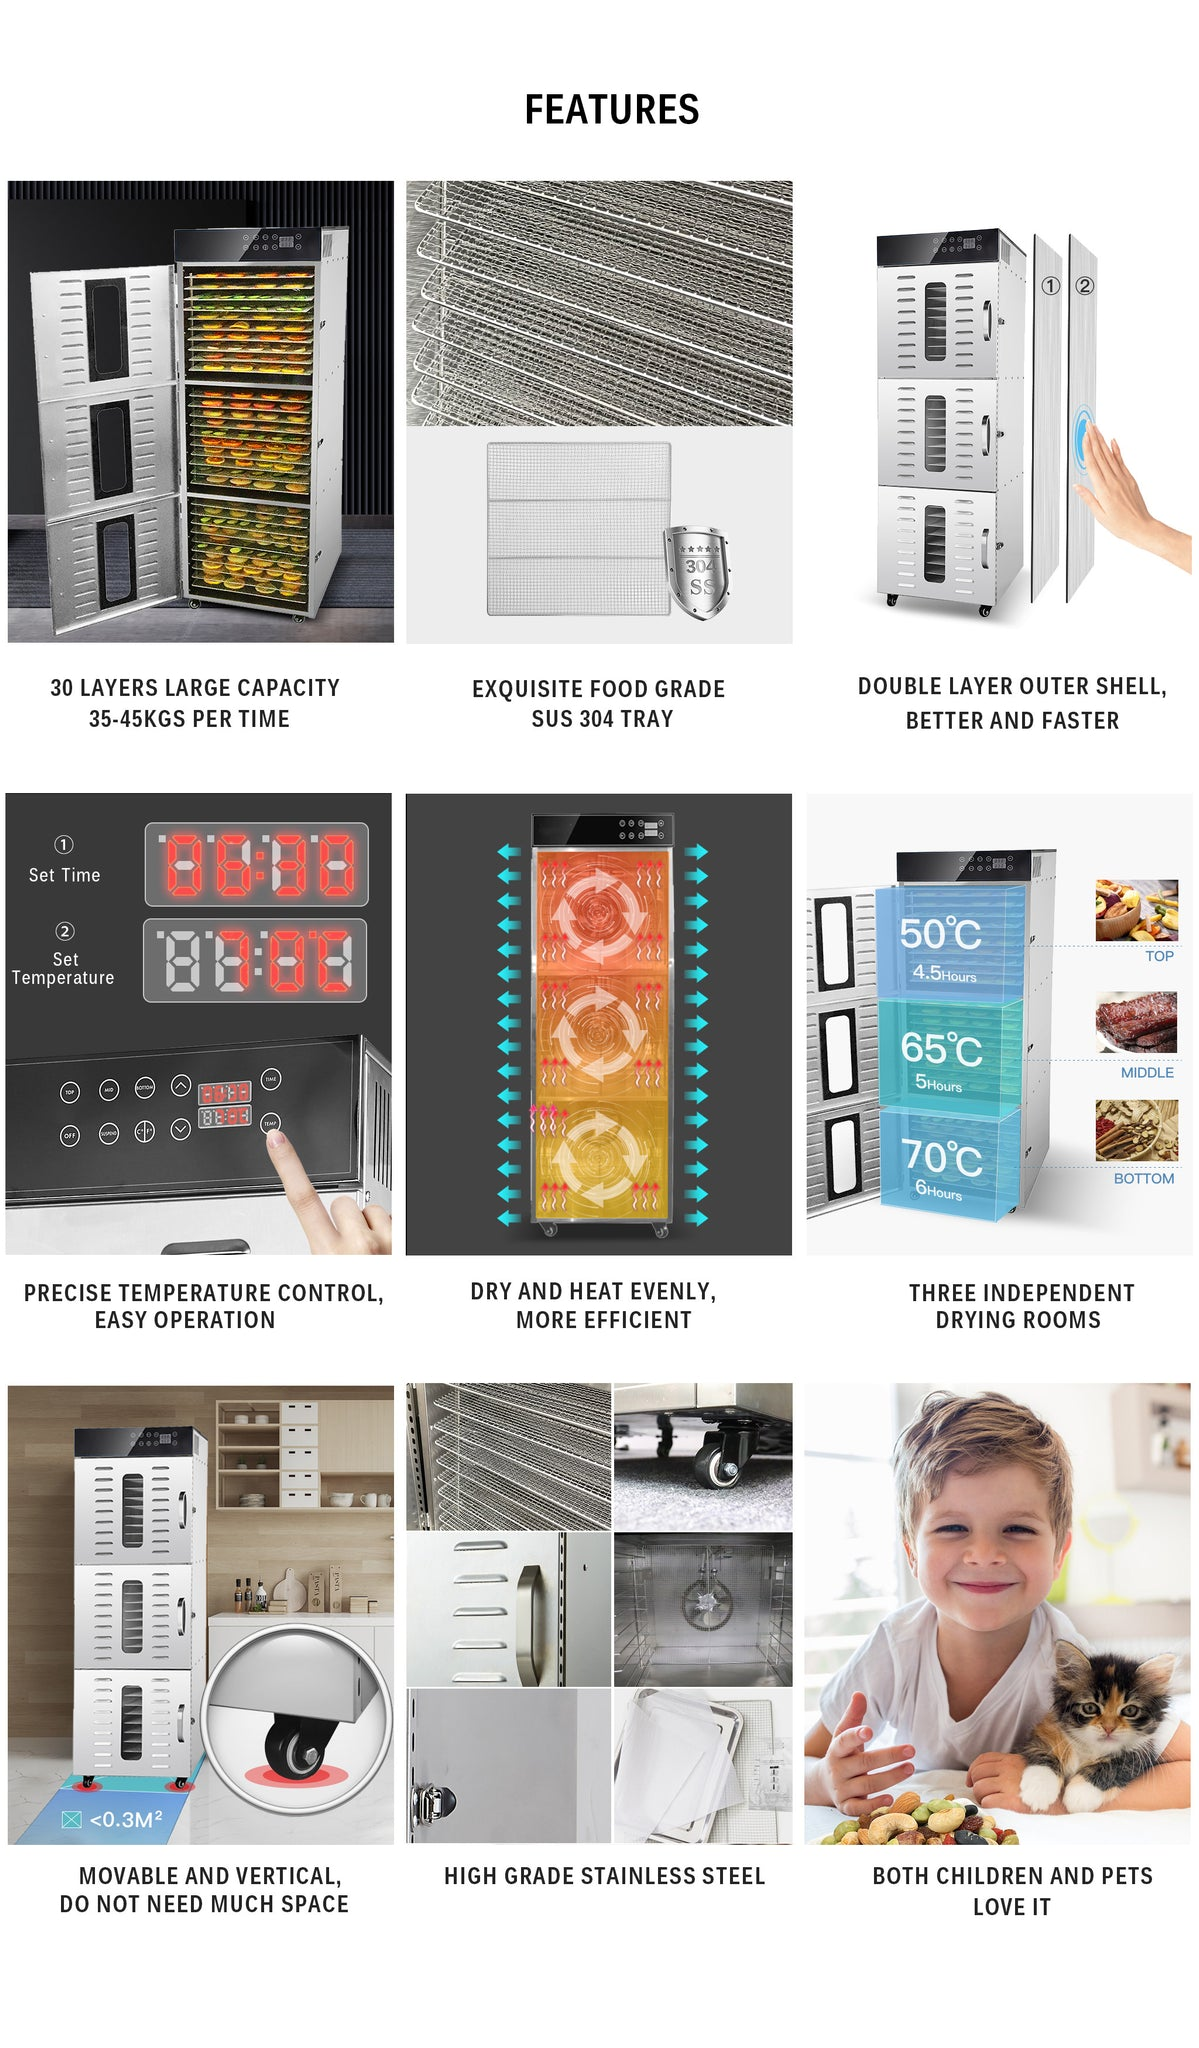 30/36 Layers Commercial Food Dehydrator -49.03/58.84 sq.ft Drying Area | Three Independent Drying Rooms | Digital Adjustable Timer | Temperature Control | Dryer for Jerky, Herb, Meat, Beef, Fruit and Vegetables